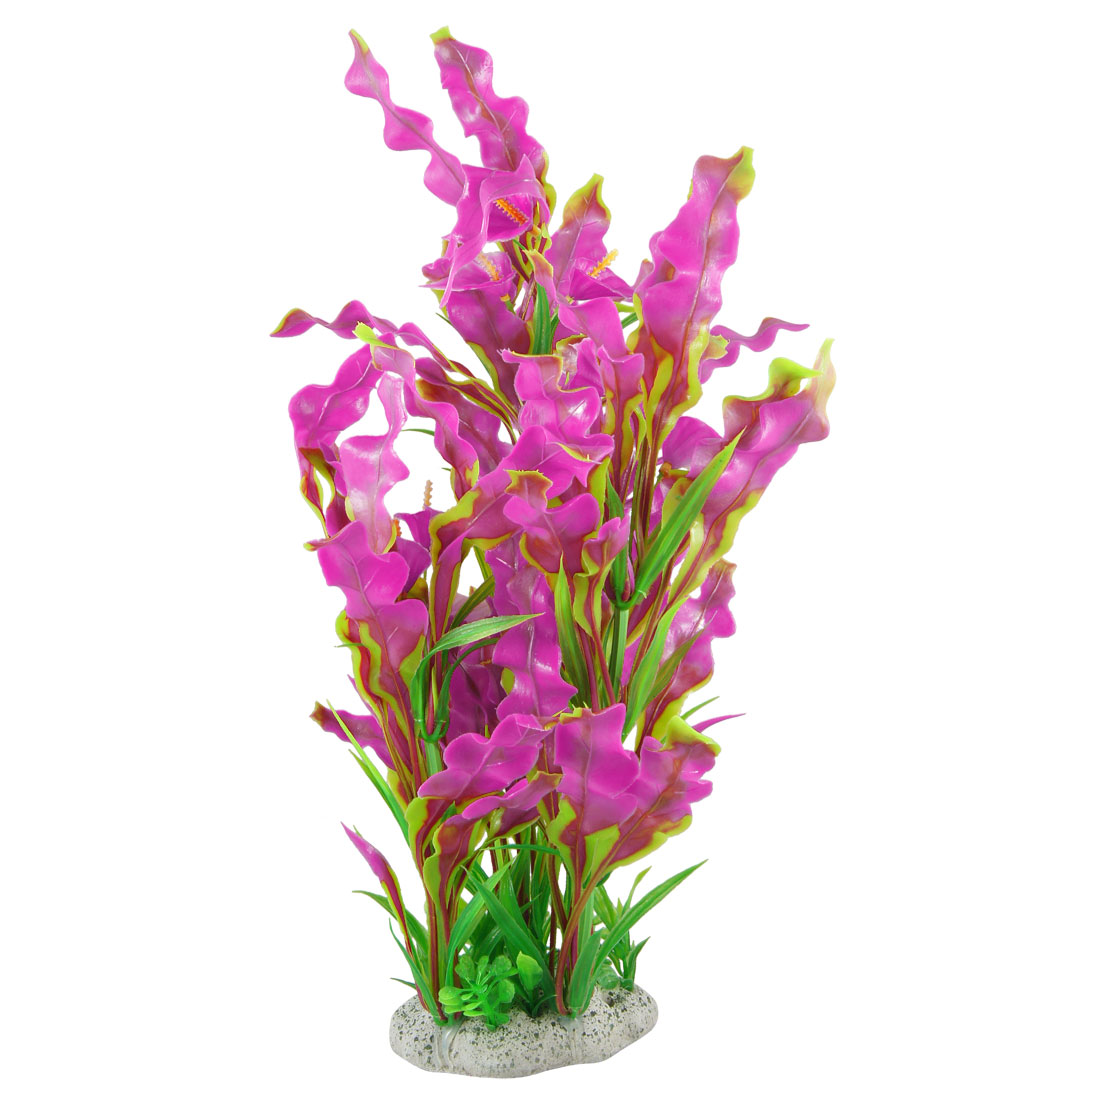 "15.7"" Height Fuchsia Green Plastic Flower Decor Water Plants Fish Aquarium"